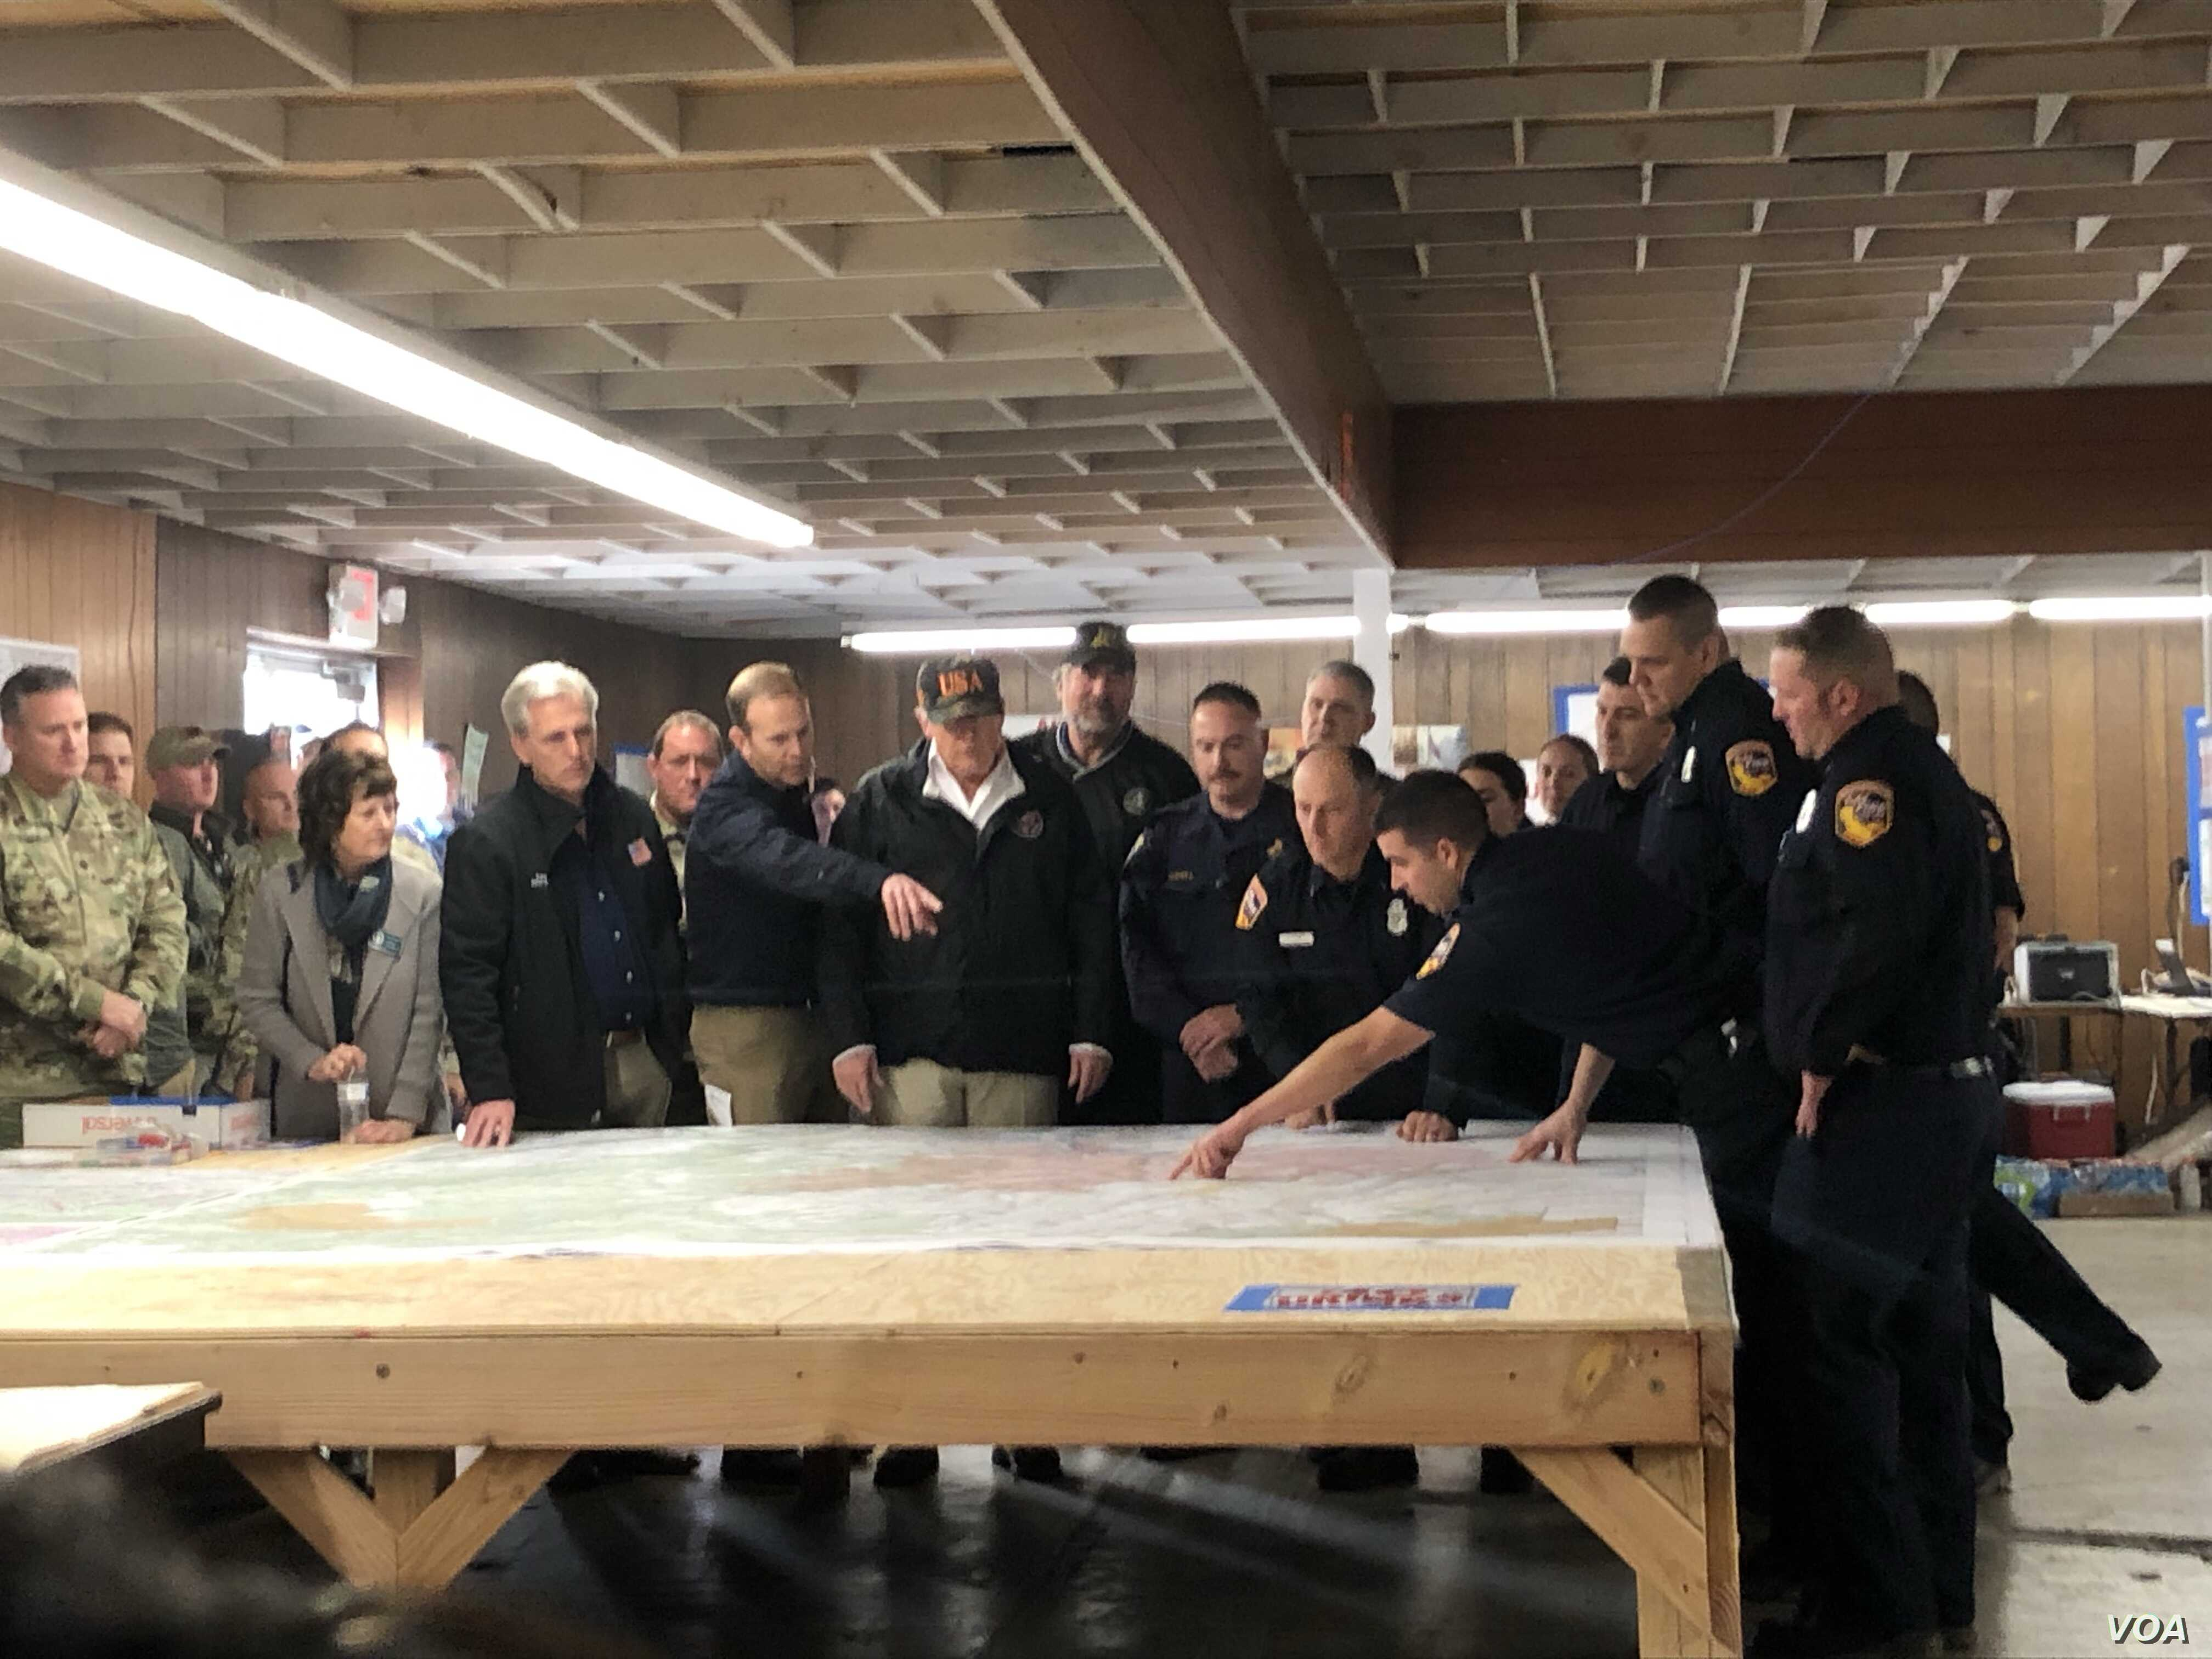 California authorities show President Donald Trump where fire damage occurred in the Paradise, Calif., area, Nov. 17, 2018. At left is Paradise Mayor Jody Jones. At least 71 people died, more than 1,000 are missing and 9,700 homes were destroyed.